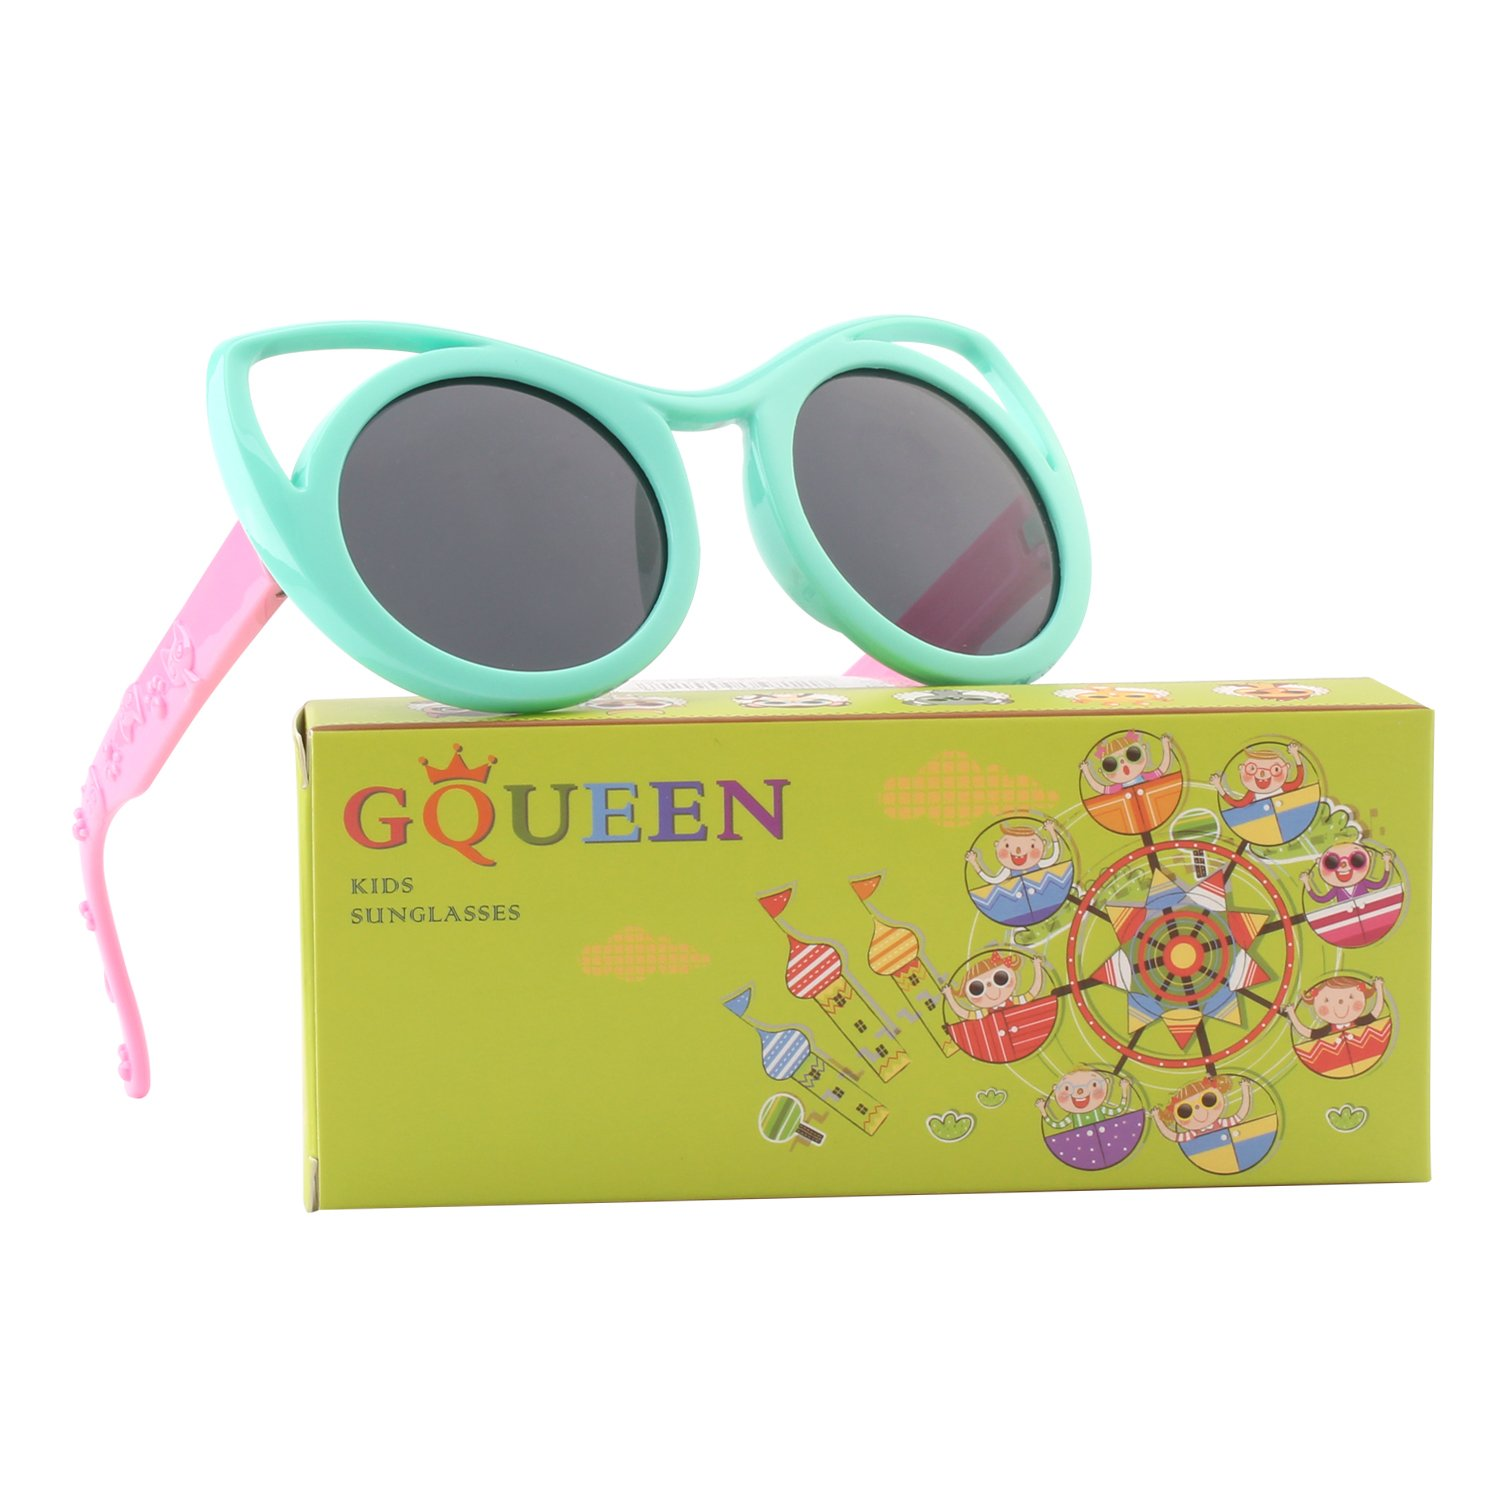 GQUEEN Rubber Flexible Kids Cateye Polarized Sunglasses for Boys Girls ET22 US-S81GQ22-8